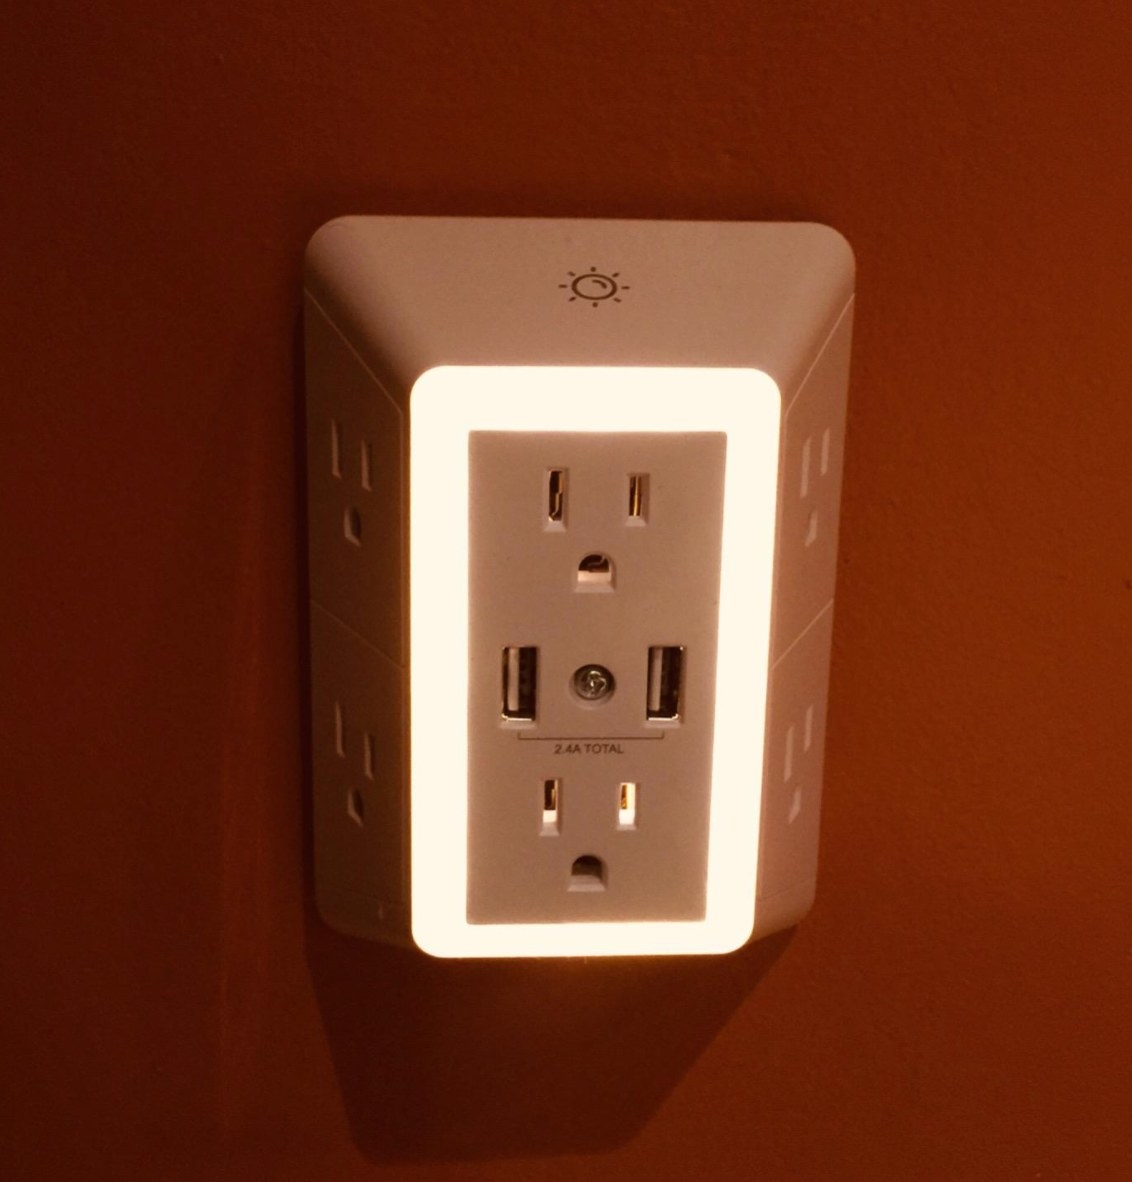 The USB wall charger and surge protector